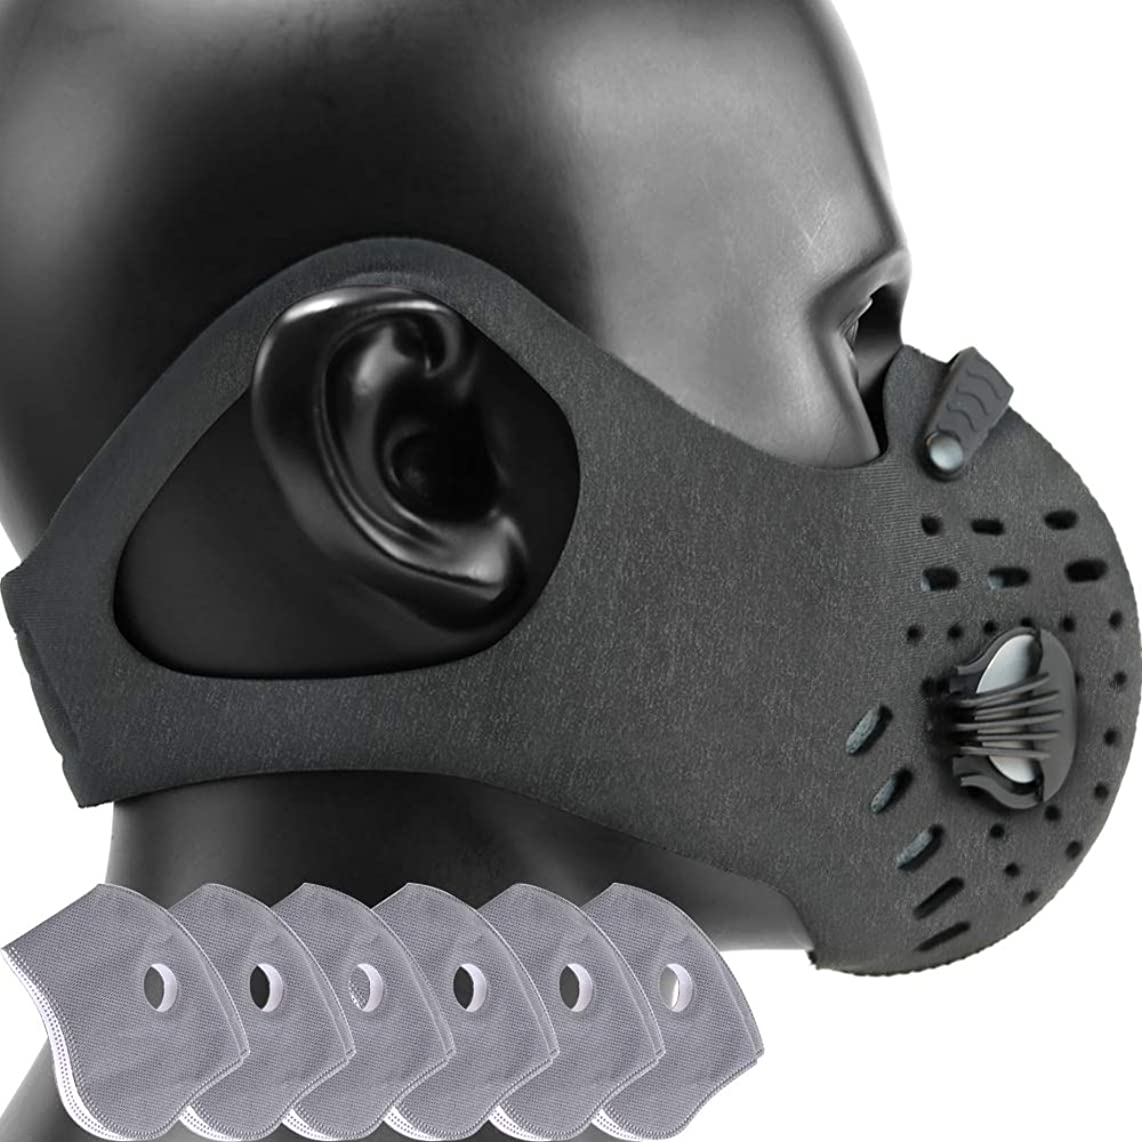 MONATA Reusable Dust/Pollution Mask with Activated Carbon Filter and Earloop For Woodworking House Cleaning Gardening and Outdoor Activities (1Gray0+6Filters)